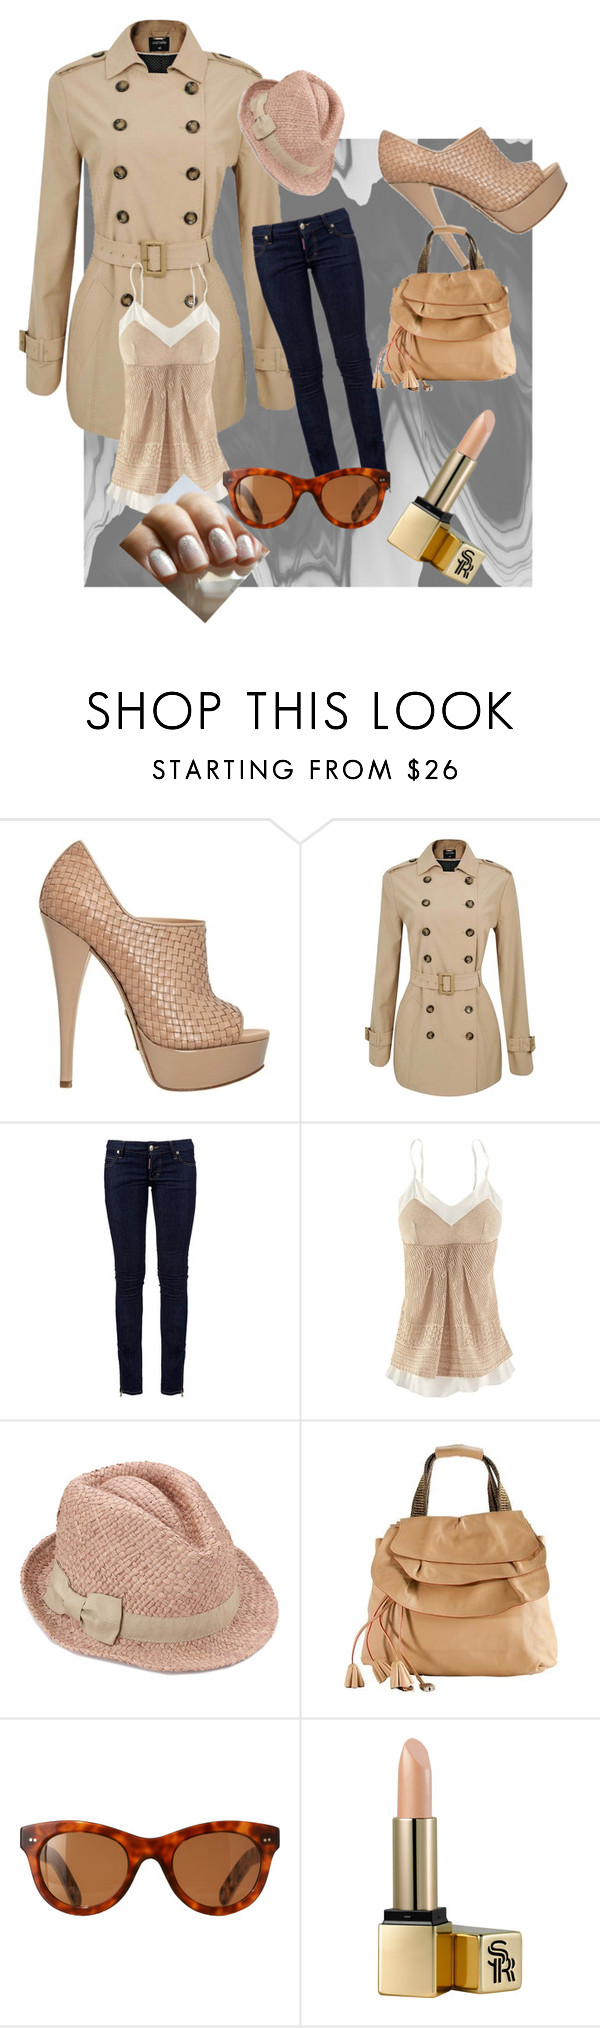 """""""Undercover Beige"""" by cdunlop ❤ liked on Polyvore featuring Alejandro Ingelmo, Dsquared2, Marc Jacobs, Orla Kiely, Sunday Riley and Essie"""